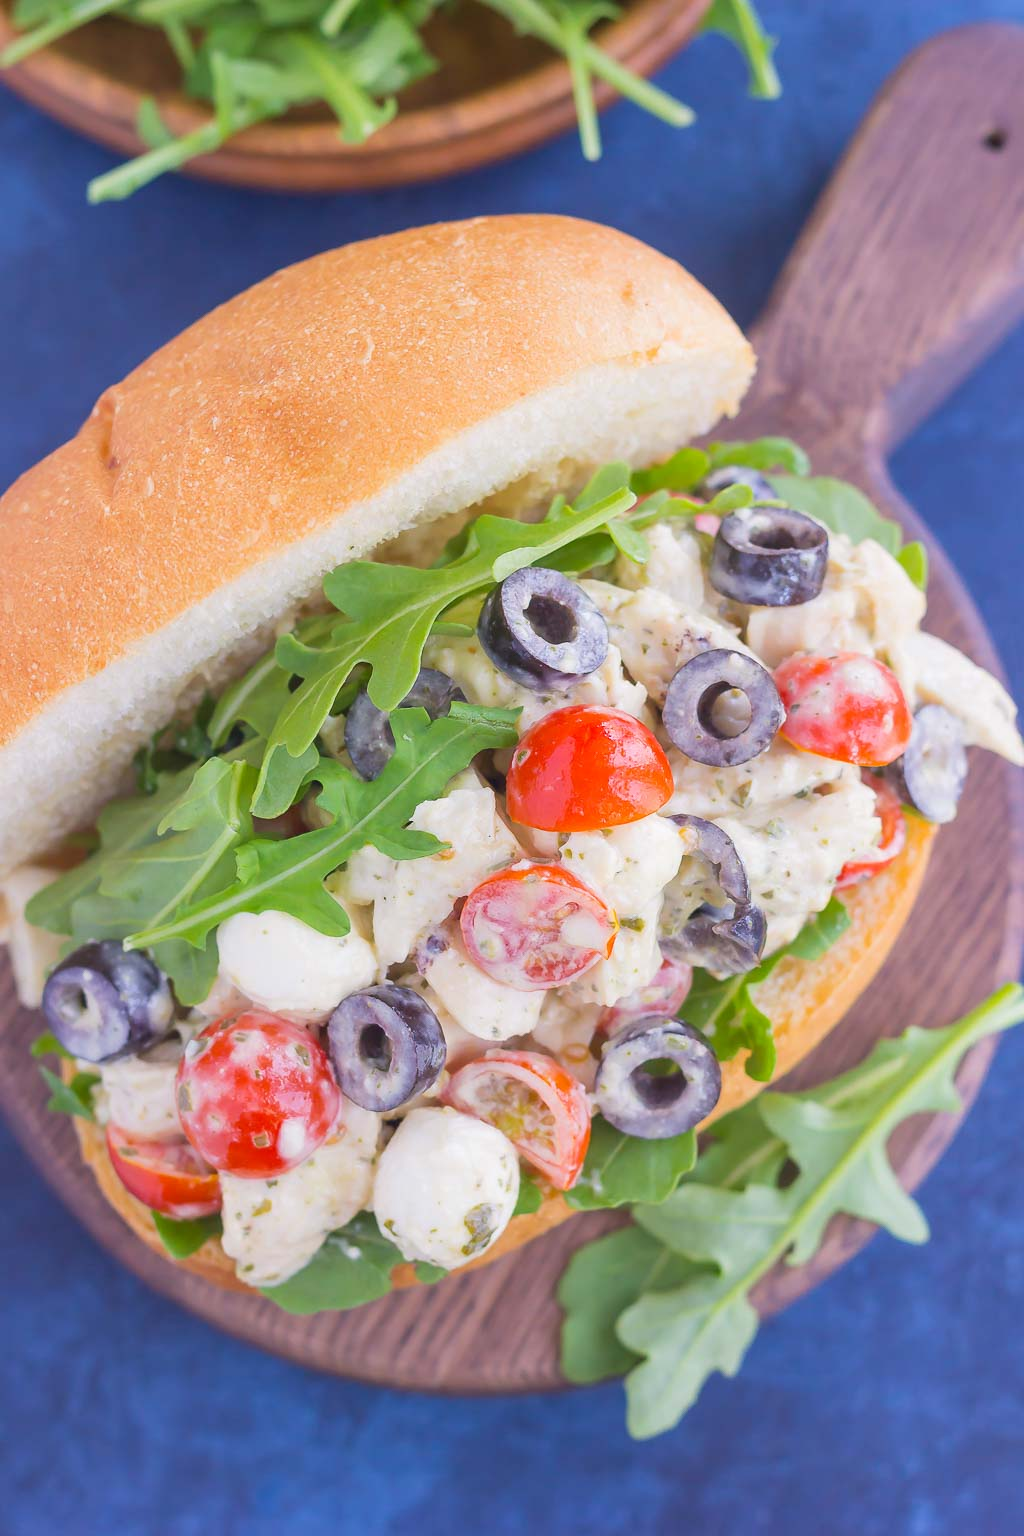 This Italian Chicken Salad is fresh, easy, and bursting with flavor. Loaded with mozzarella cheese, tomatoes, black olives and pesto, this fun twist on a classic flavor will have you coming back for more. This salad is perfect for an easy lunch or dinner and makes delicious sandwiches, too!